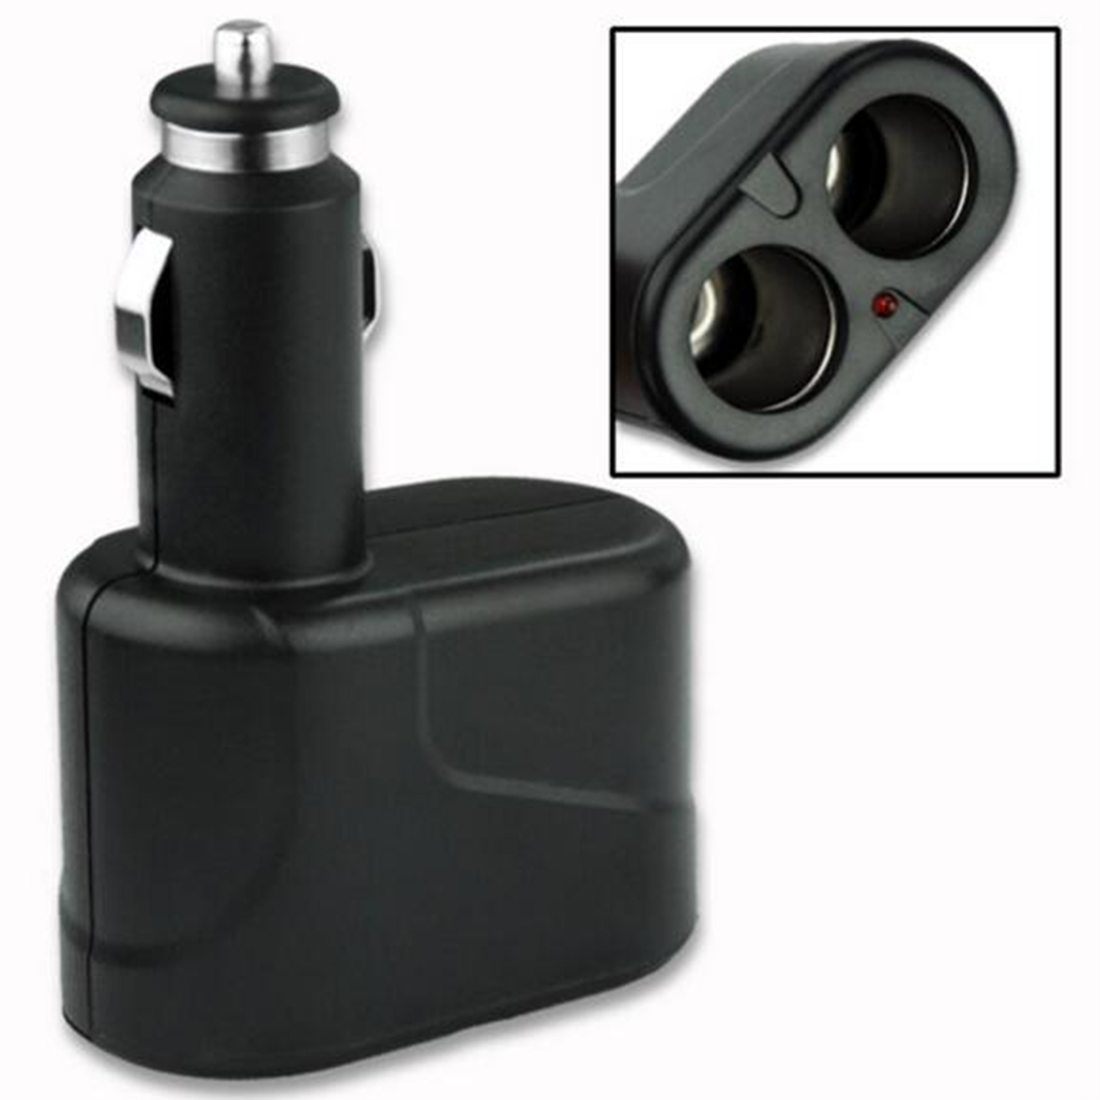 Dewtreetali High quality <font><b>Car</b></font> Accessories 2 Way DC <font><b>12V</b></font> <font><b>Car</b></font> Charger Cigarette Lighter Double <font><b>Power</b></font> <font><b>Adapter</b></font> Splitter Socket image